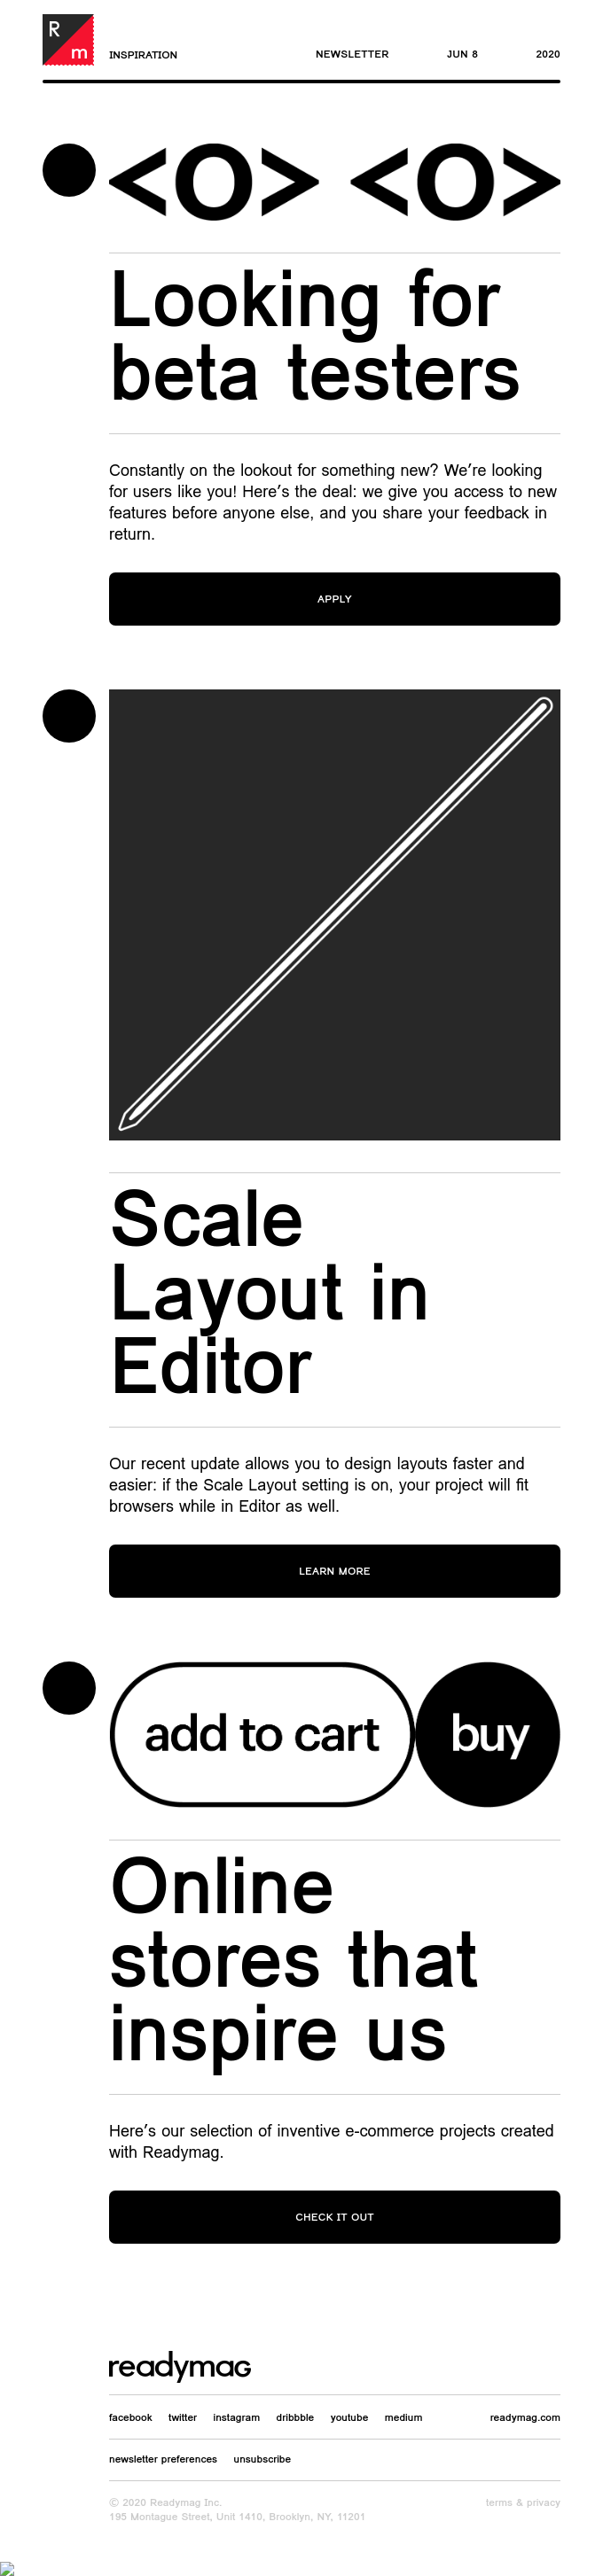 New things to try out: scale your layout, become a beta tester, create a store